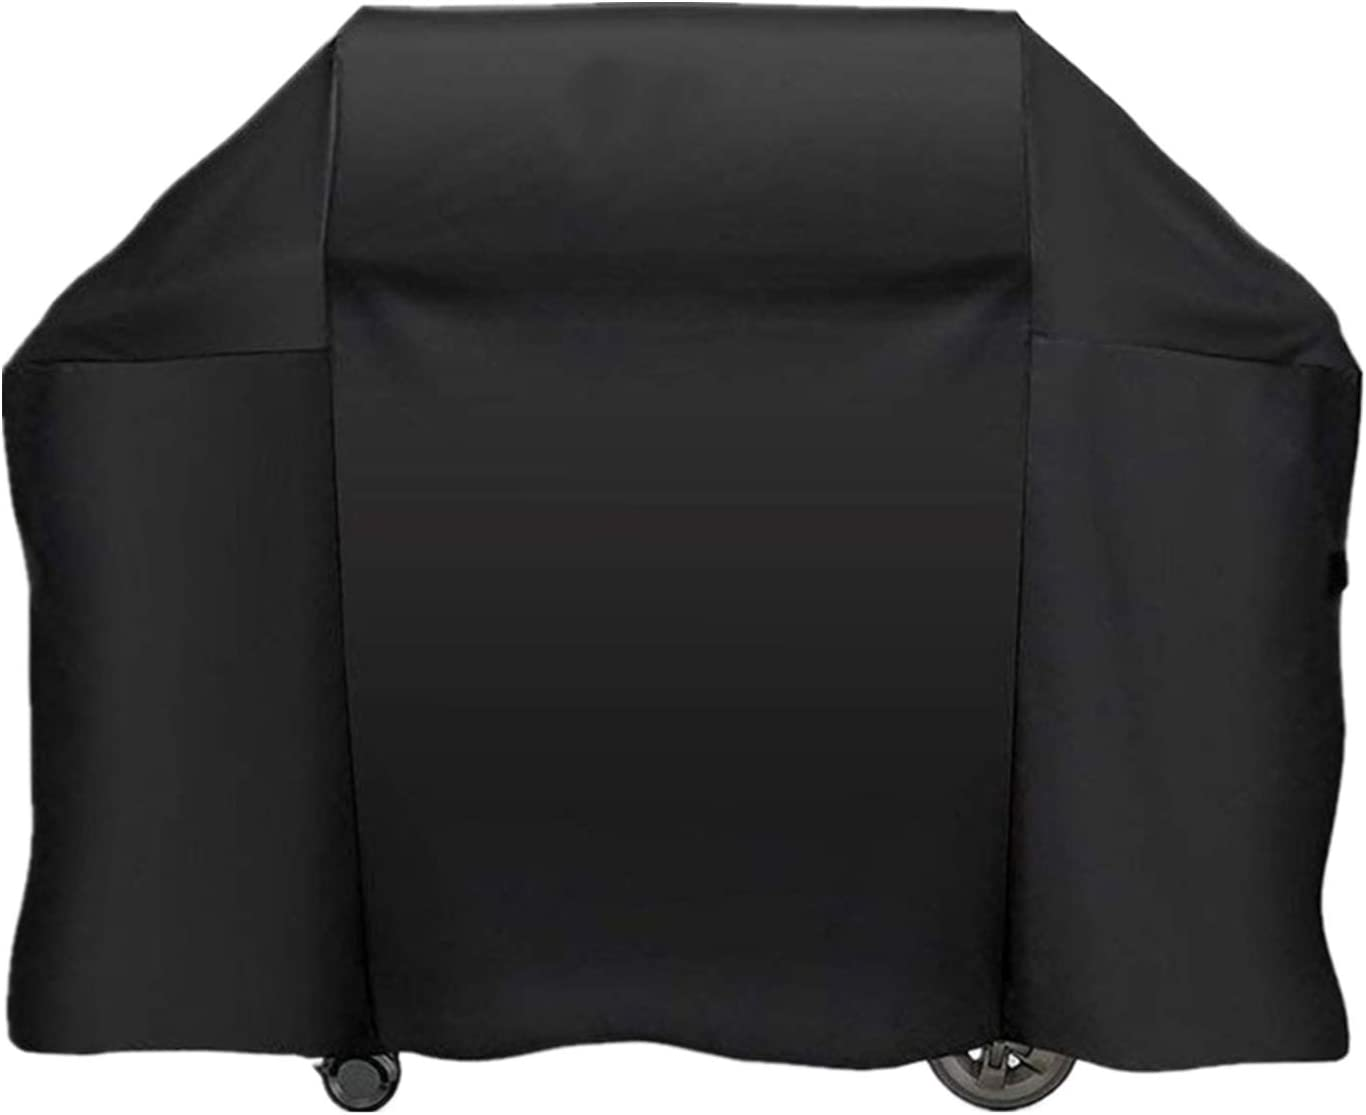 UpStart Import Components 2-Pack Grill Cover Repl Cash special price Heavy Waterproof Duty